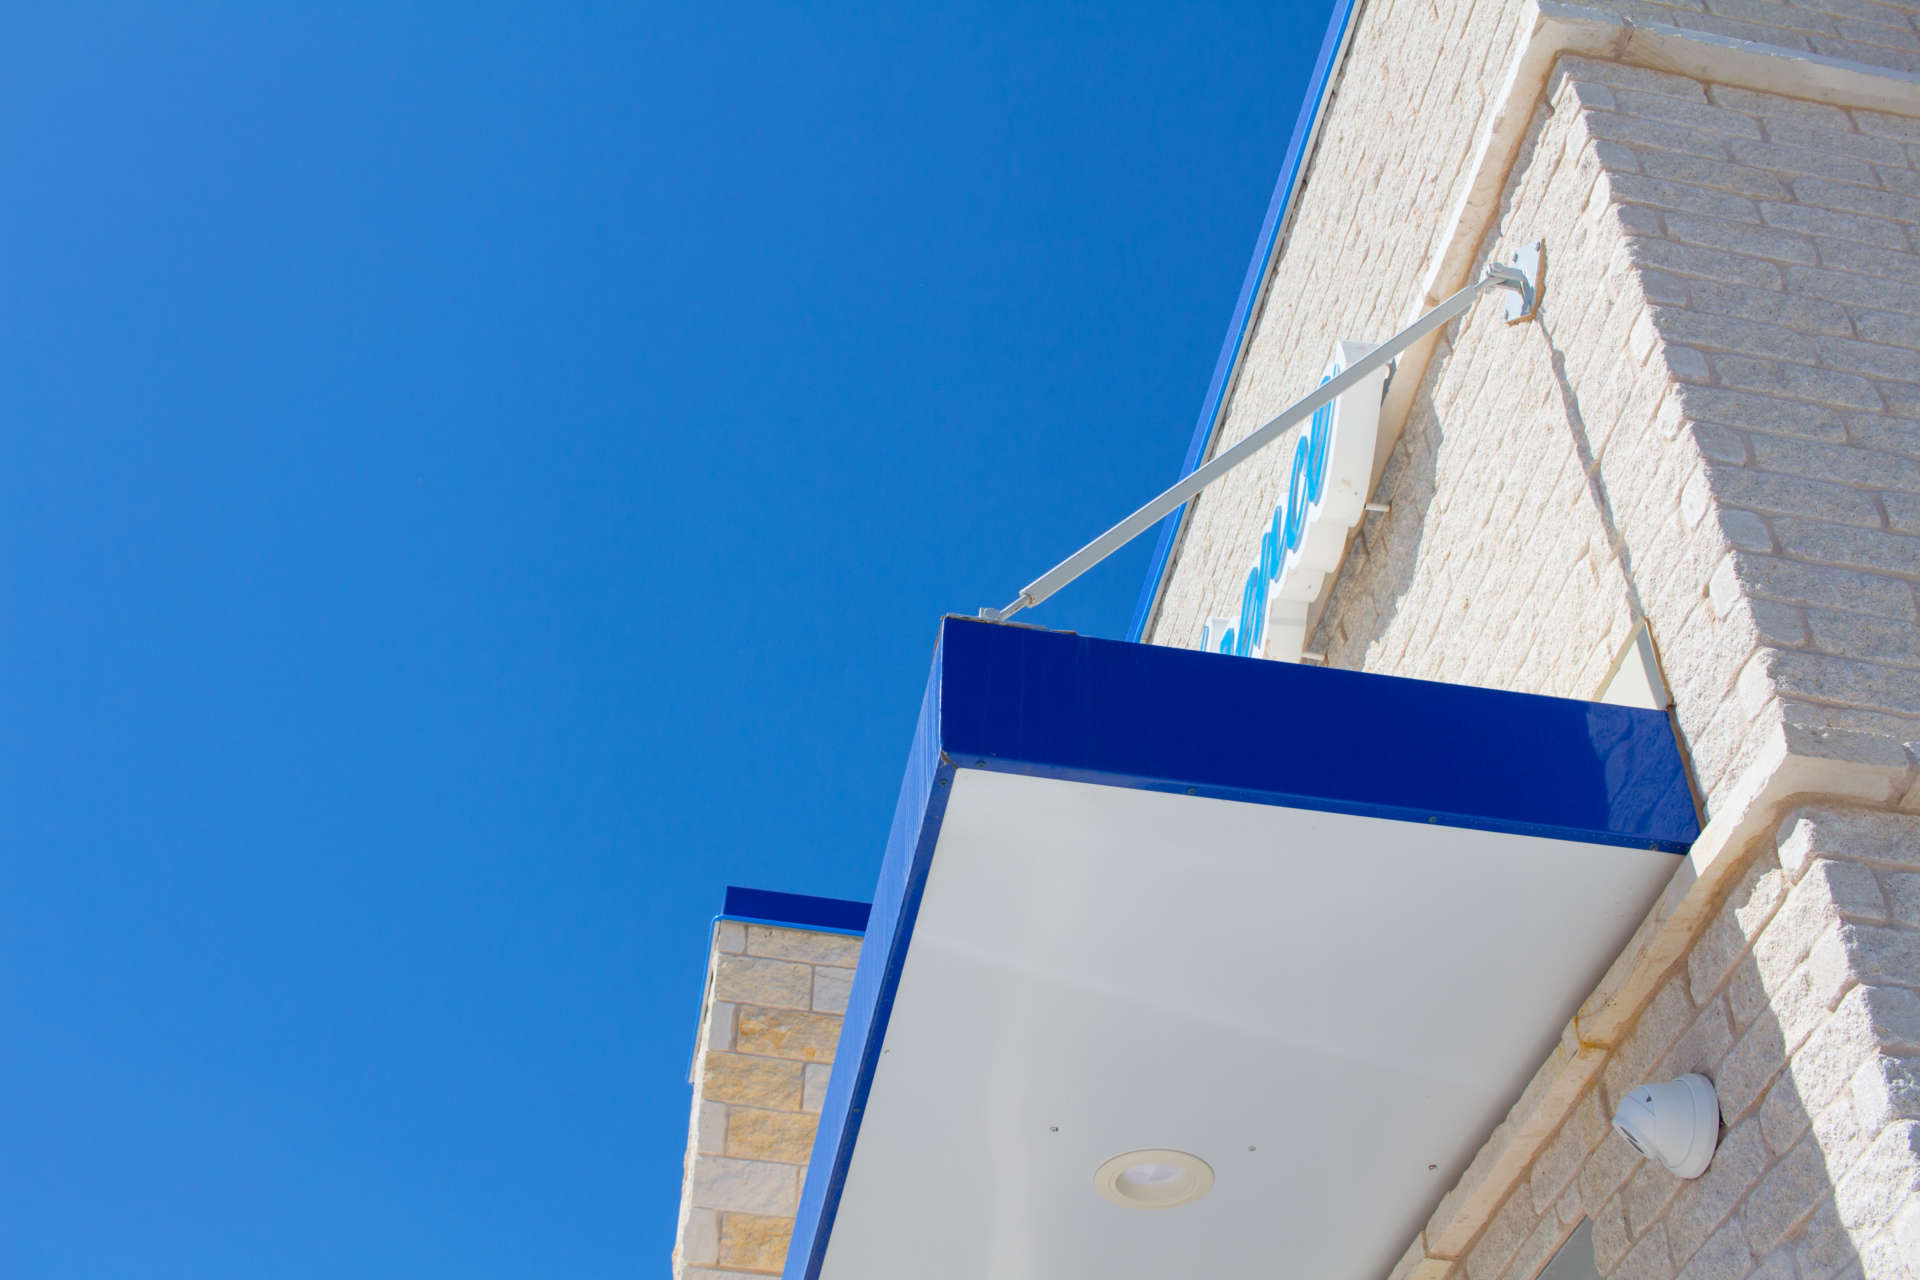 Water Still Custom Awning with brace and a clear blue sky